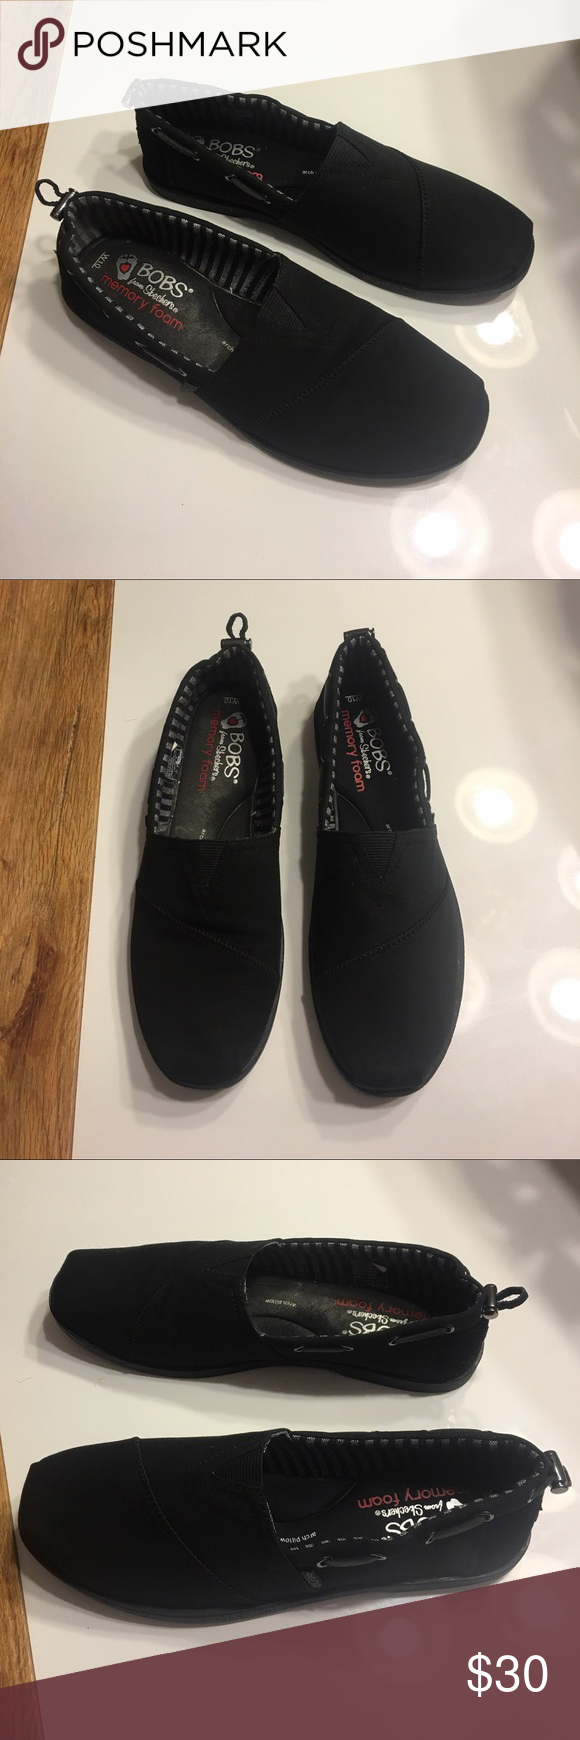 New Bobs by Skechers black comfort flats sz 10 New Bobs by Skechers black comfort flats sz 10 one shoe was used as a display so it has some dust. Very comfy shoes memory foam Skechers Shoes Flats & Loafers